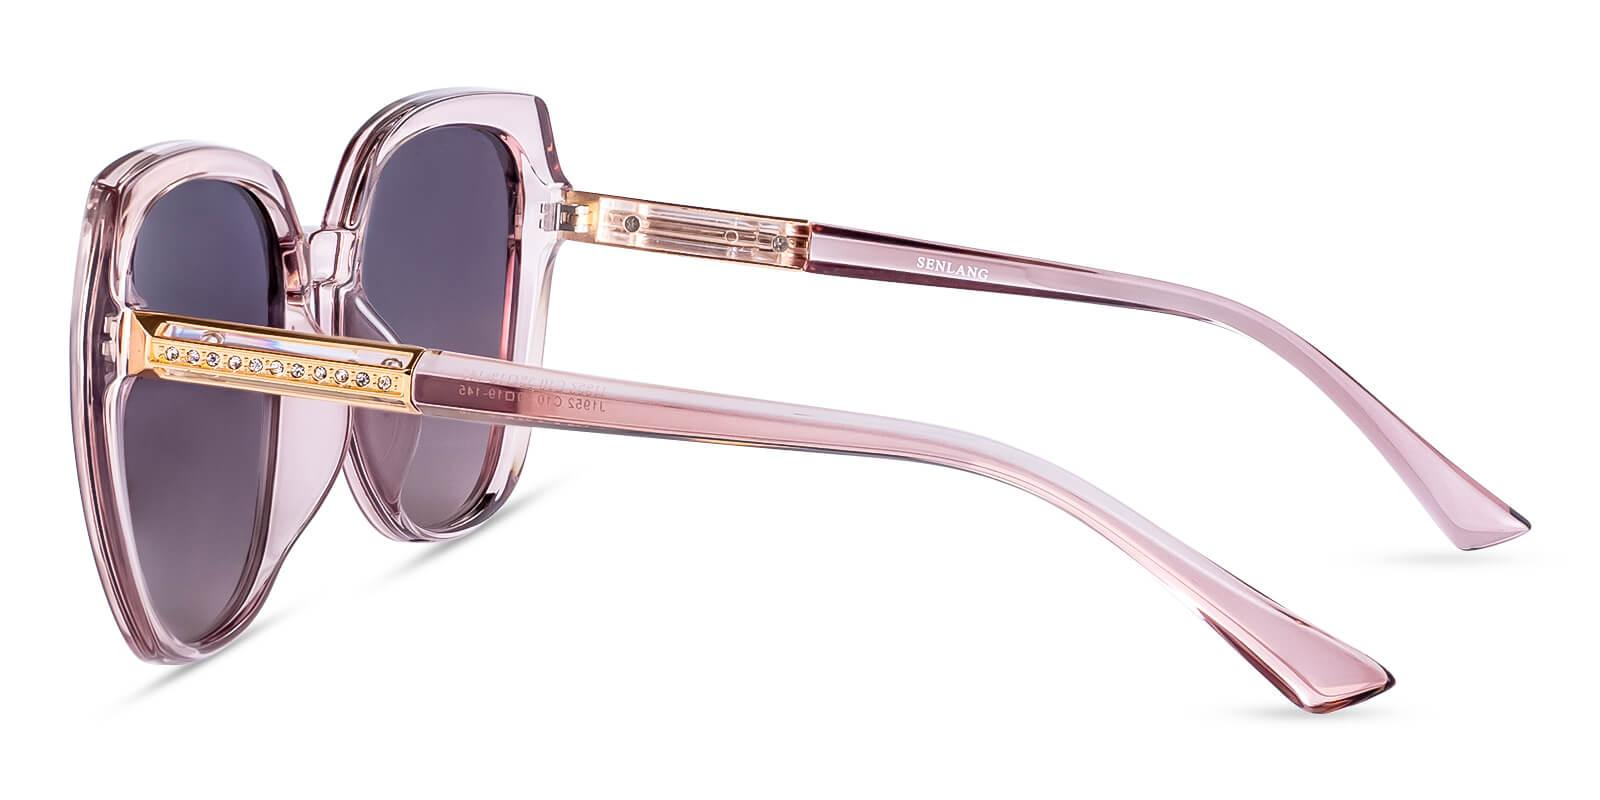 Hecaba Pink TR Sunglasses , UniversalBridgeFit Frames from ABBE Glasses